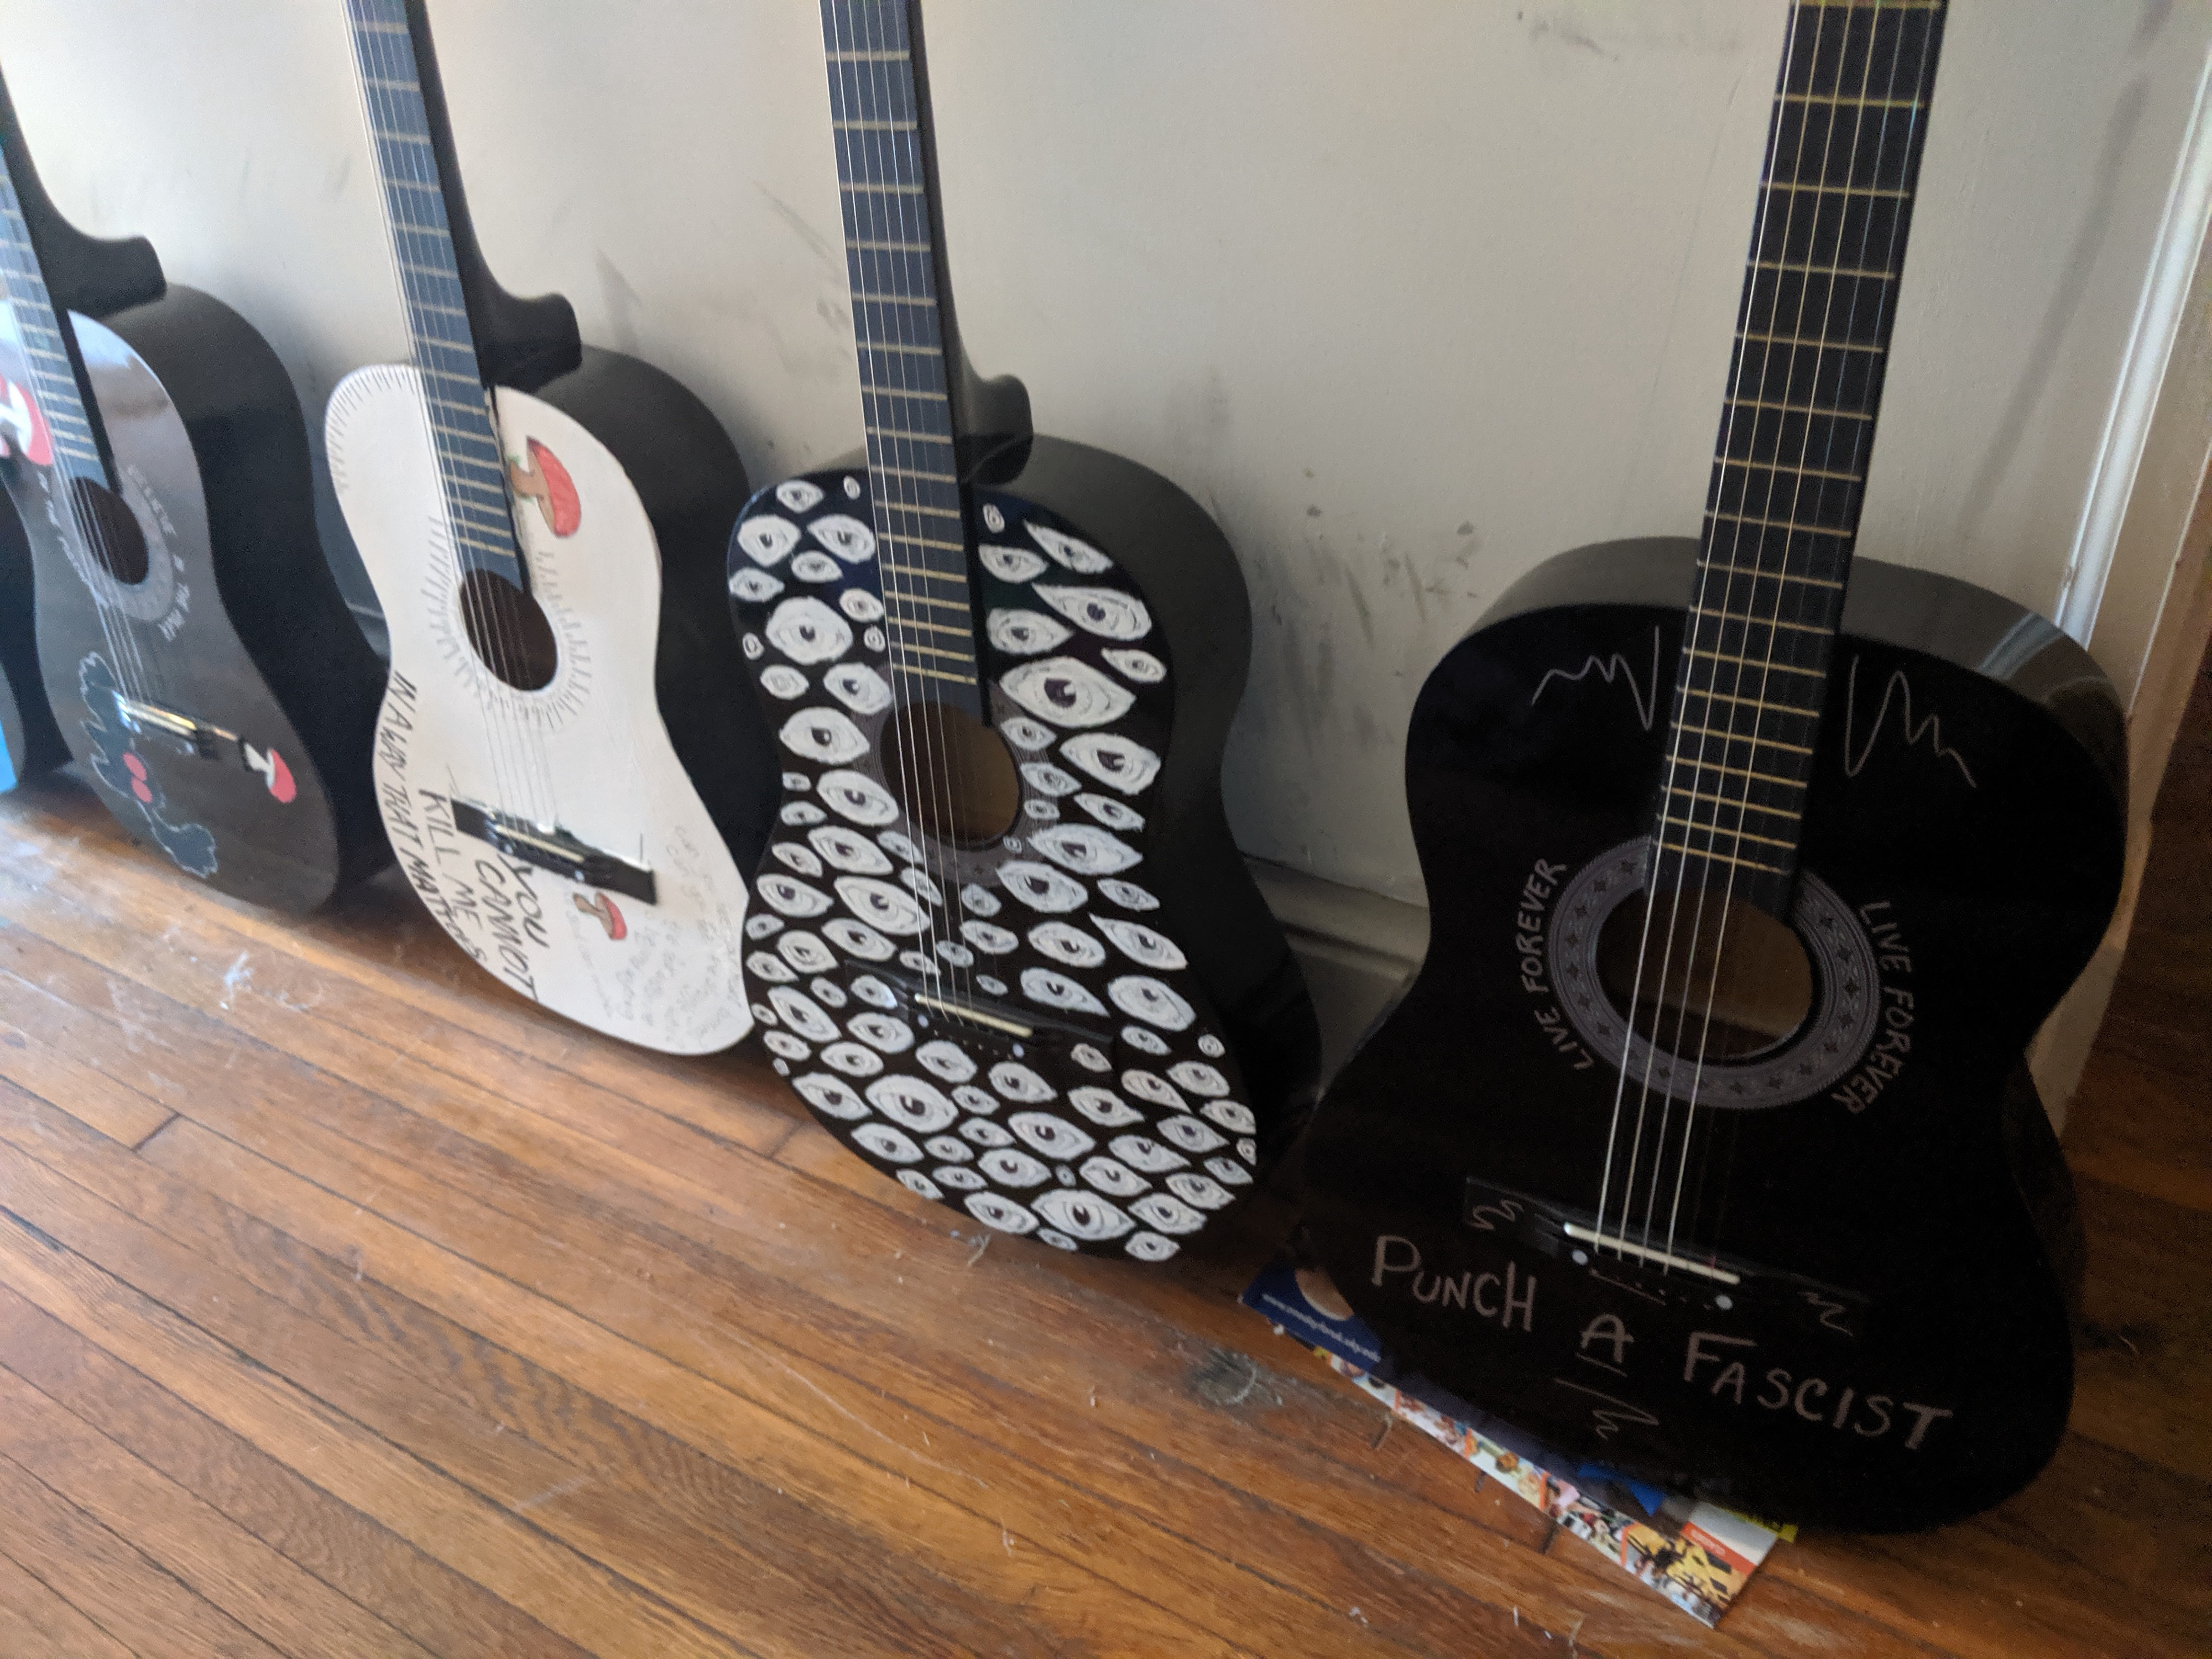 a collection of painted guitars lined up against a wall.